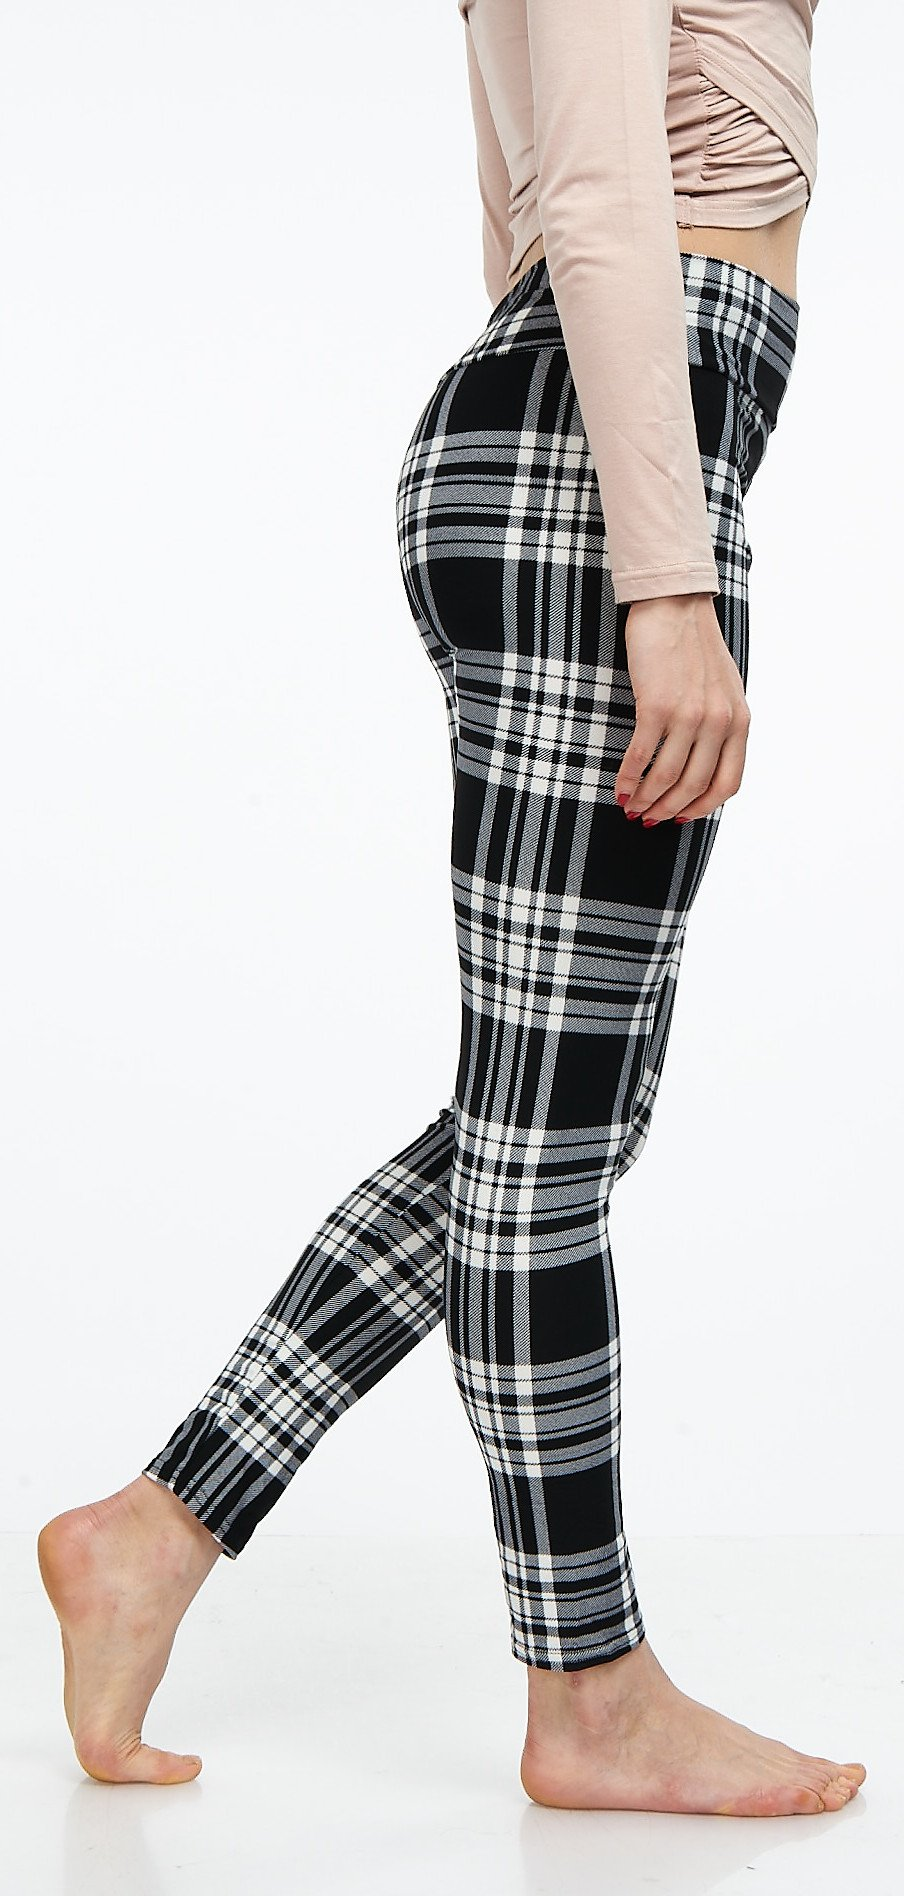 LMB Lush Moda Extra Soft Leggings with Designs- Variety of Prints Yoga Waist - 769YF Black White Plaid B5 by LMB (Image #5)